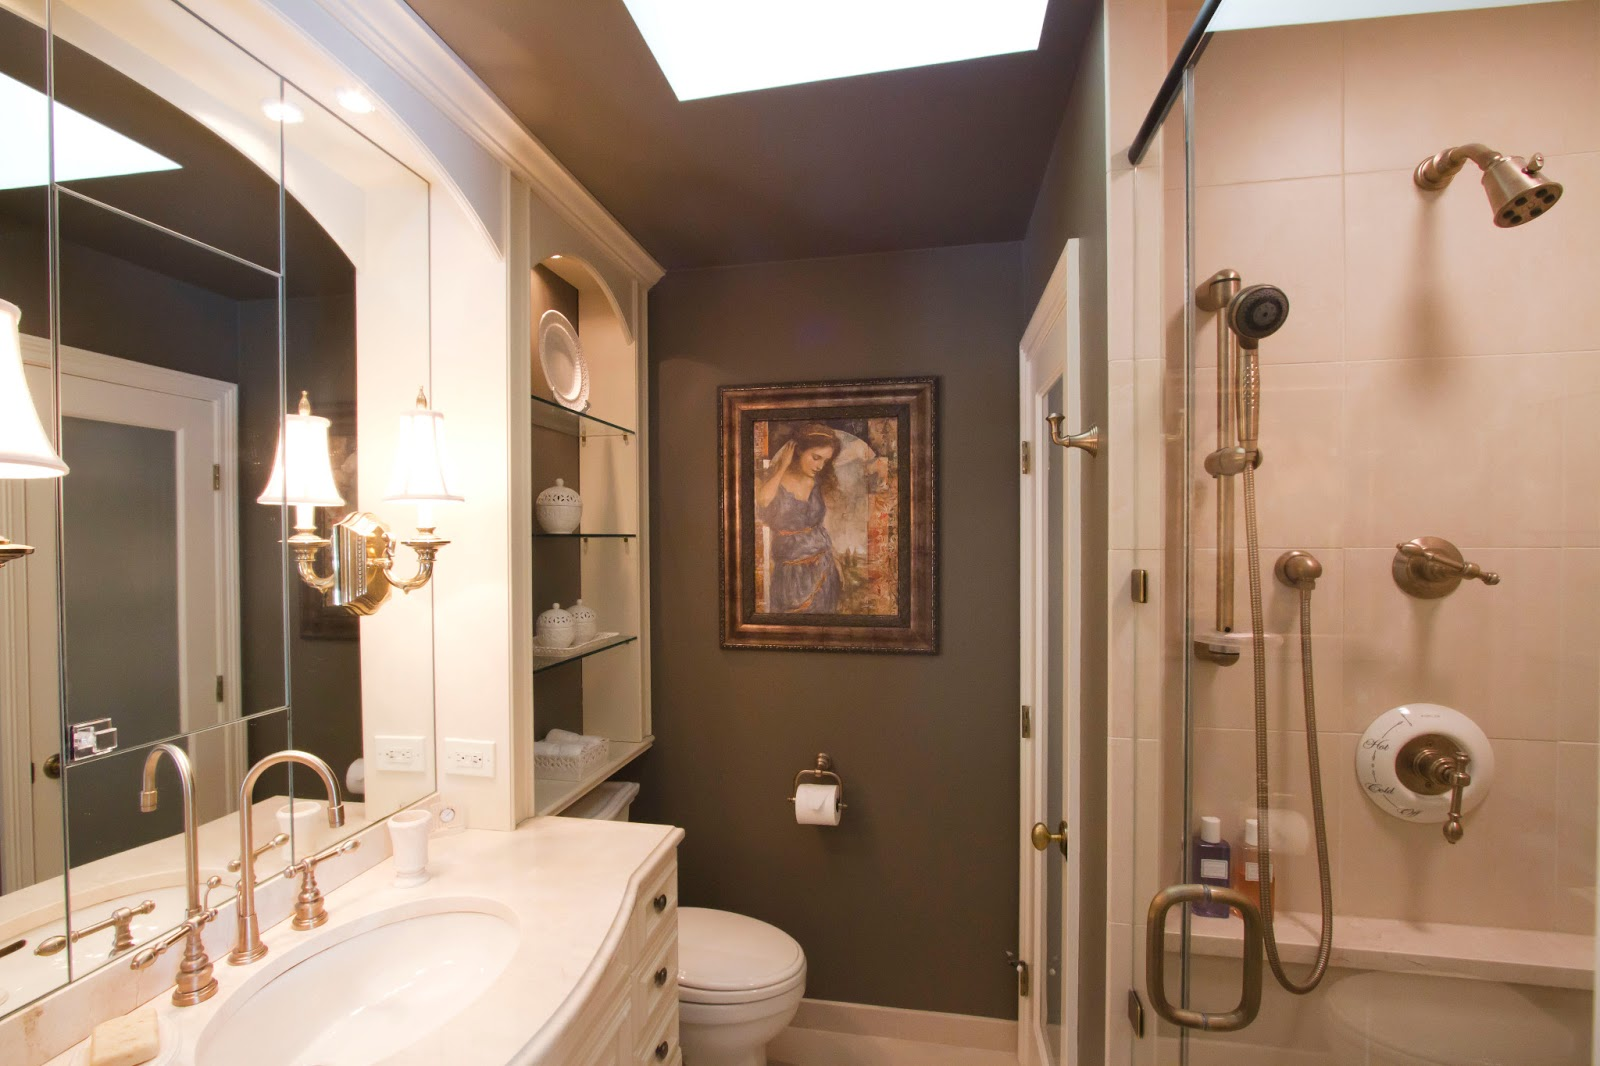 Small bathroom ideas photo gallery large and beautiful photos photo to select small bathroom for Small bathroom remodel photo gallery